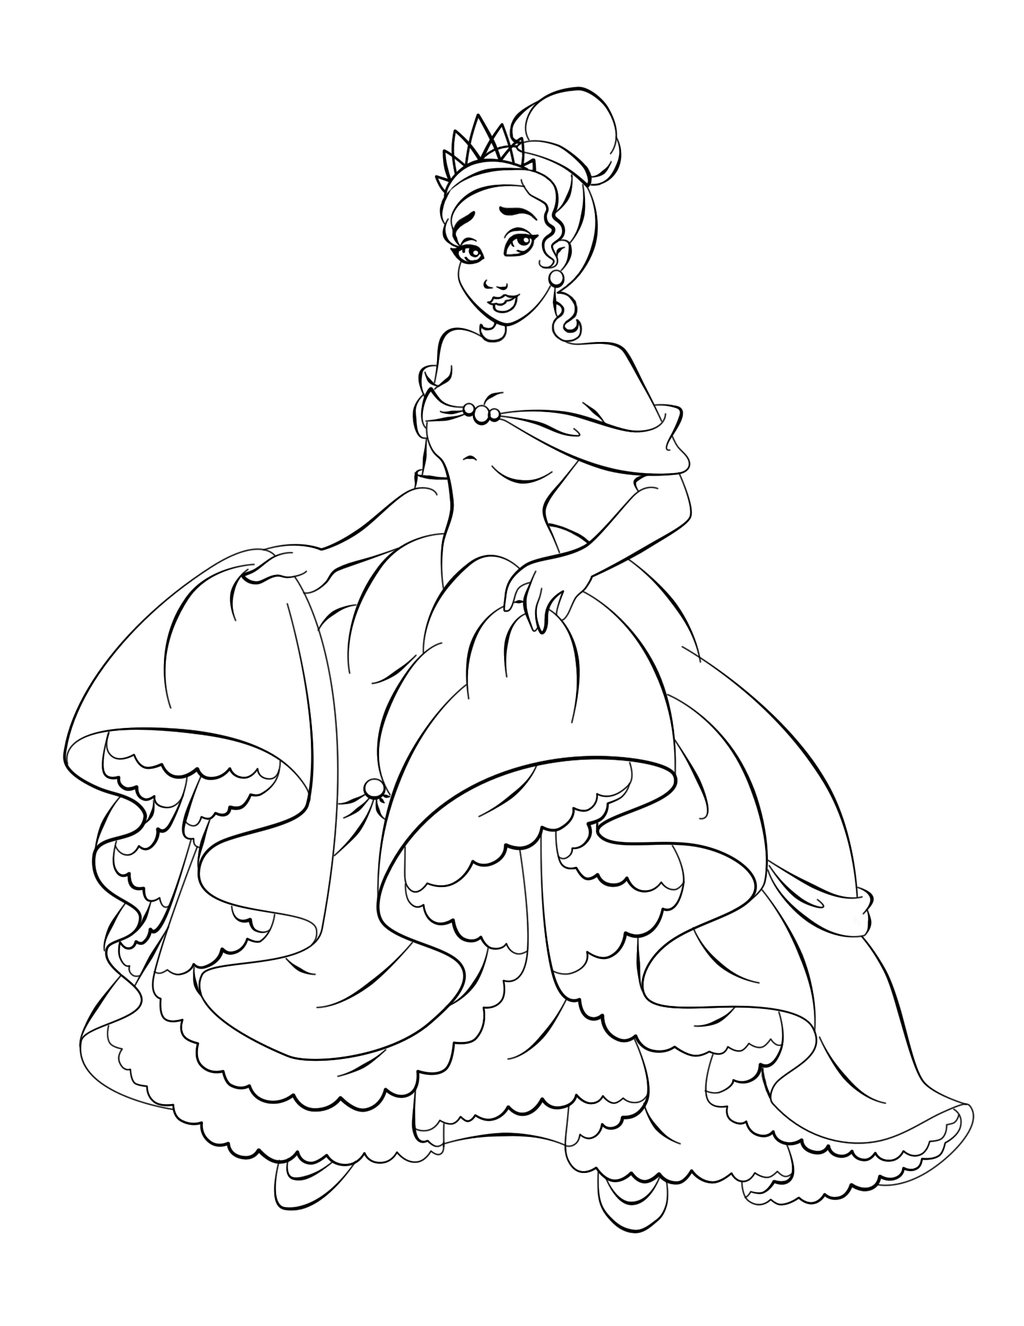 free coloring pages to print disney - Disney villains coloring pages for kids Free printable